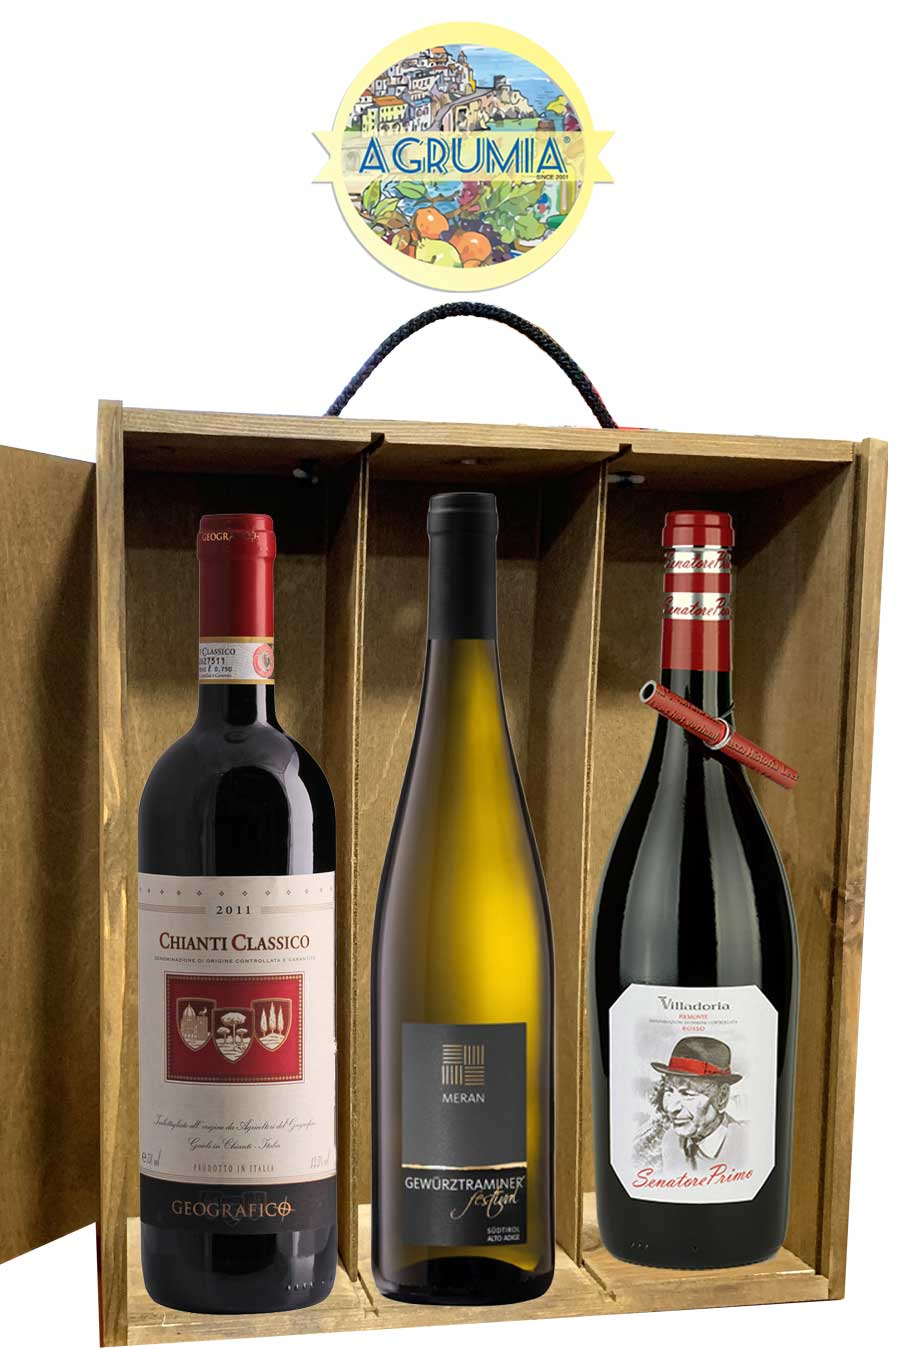 Agrumia Premium Three Bottle Italian Wine Hamper